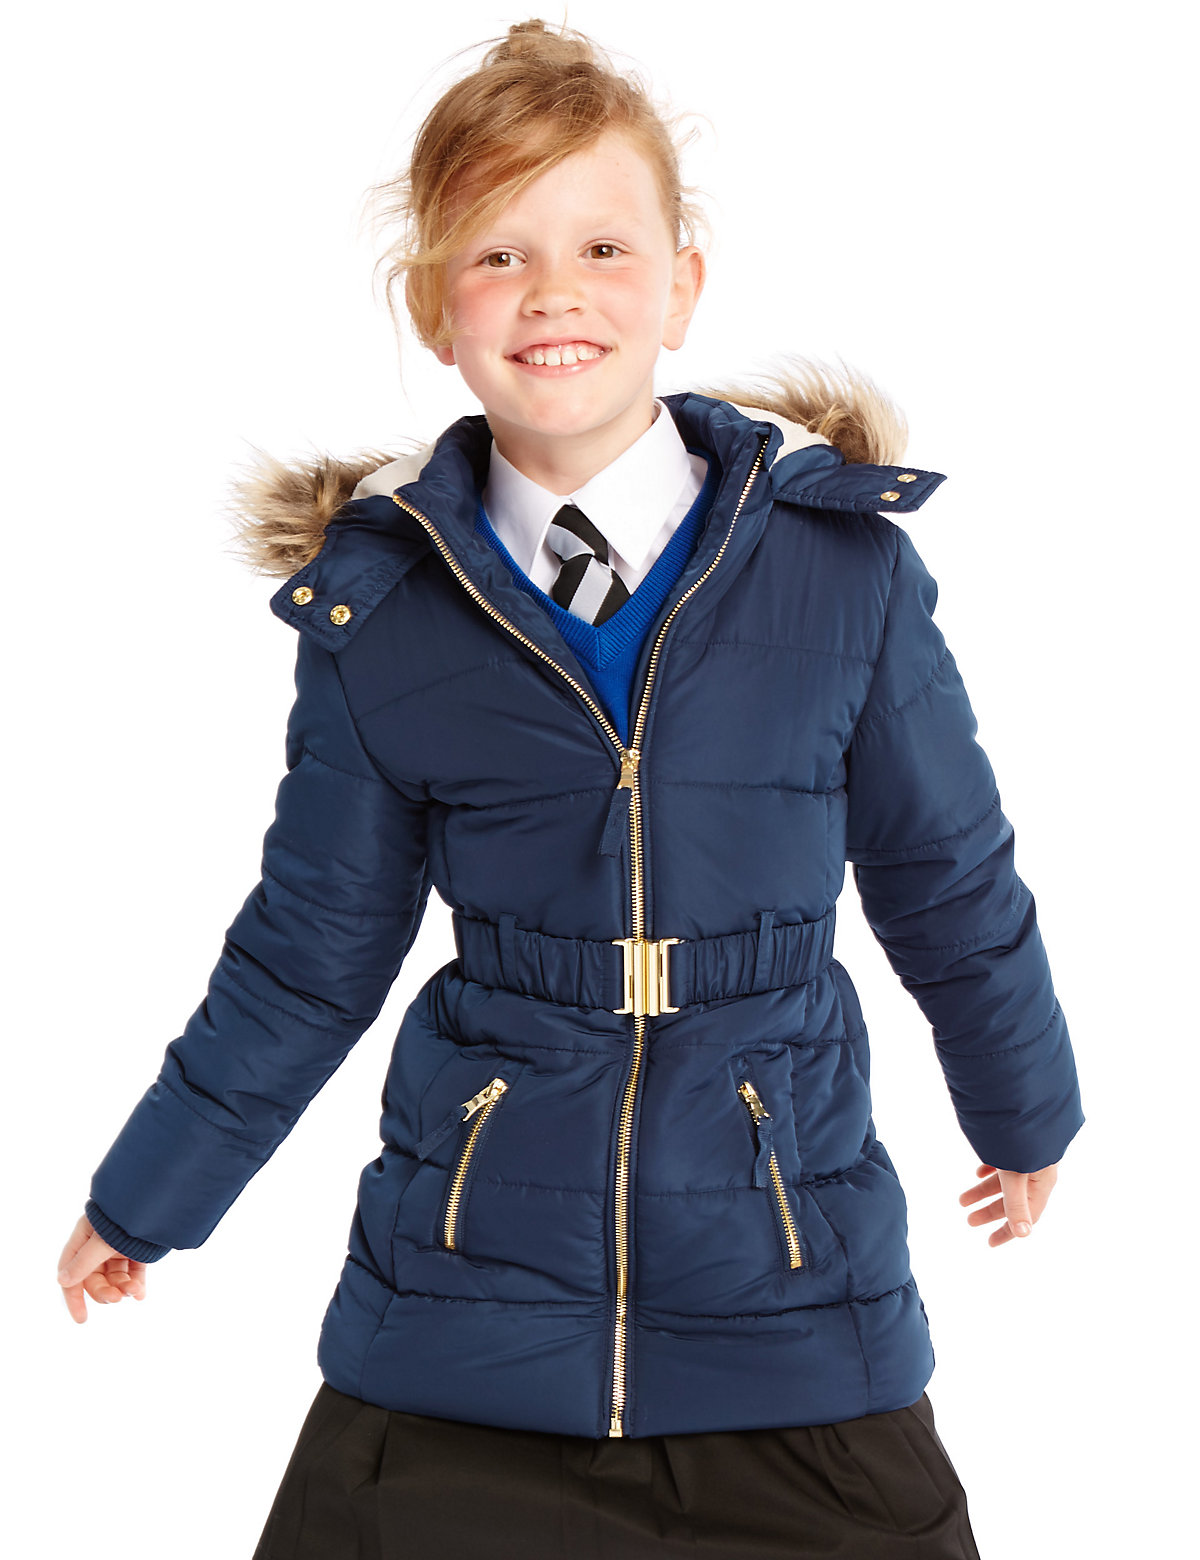 Longline Belted Coat with Stormwear (316 Years)